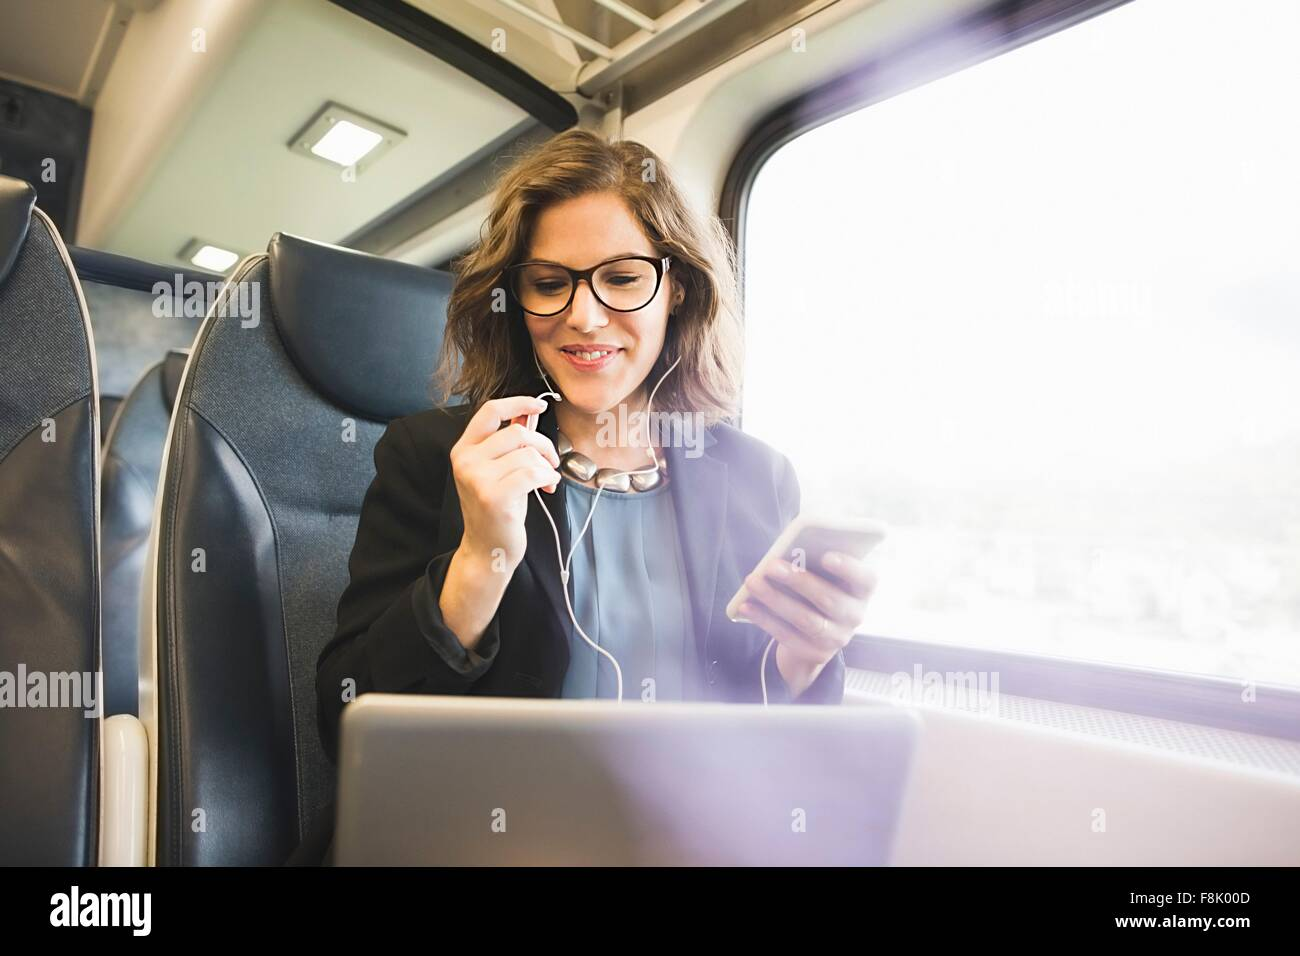 Mid adult woman on train, holding smartphone, looking at laptop - Stock Image